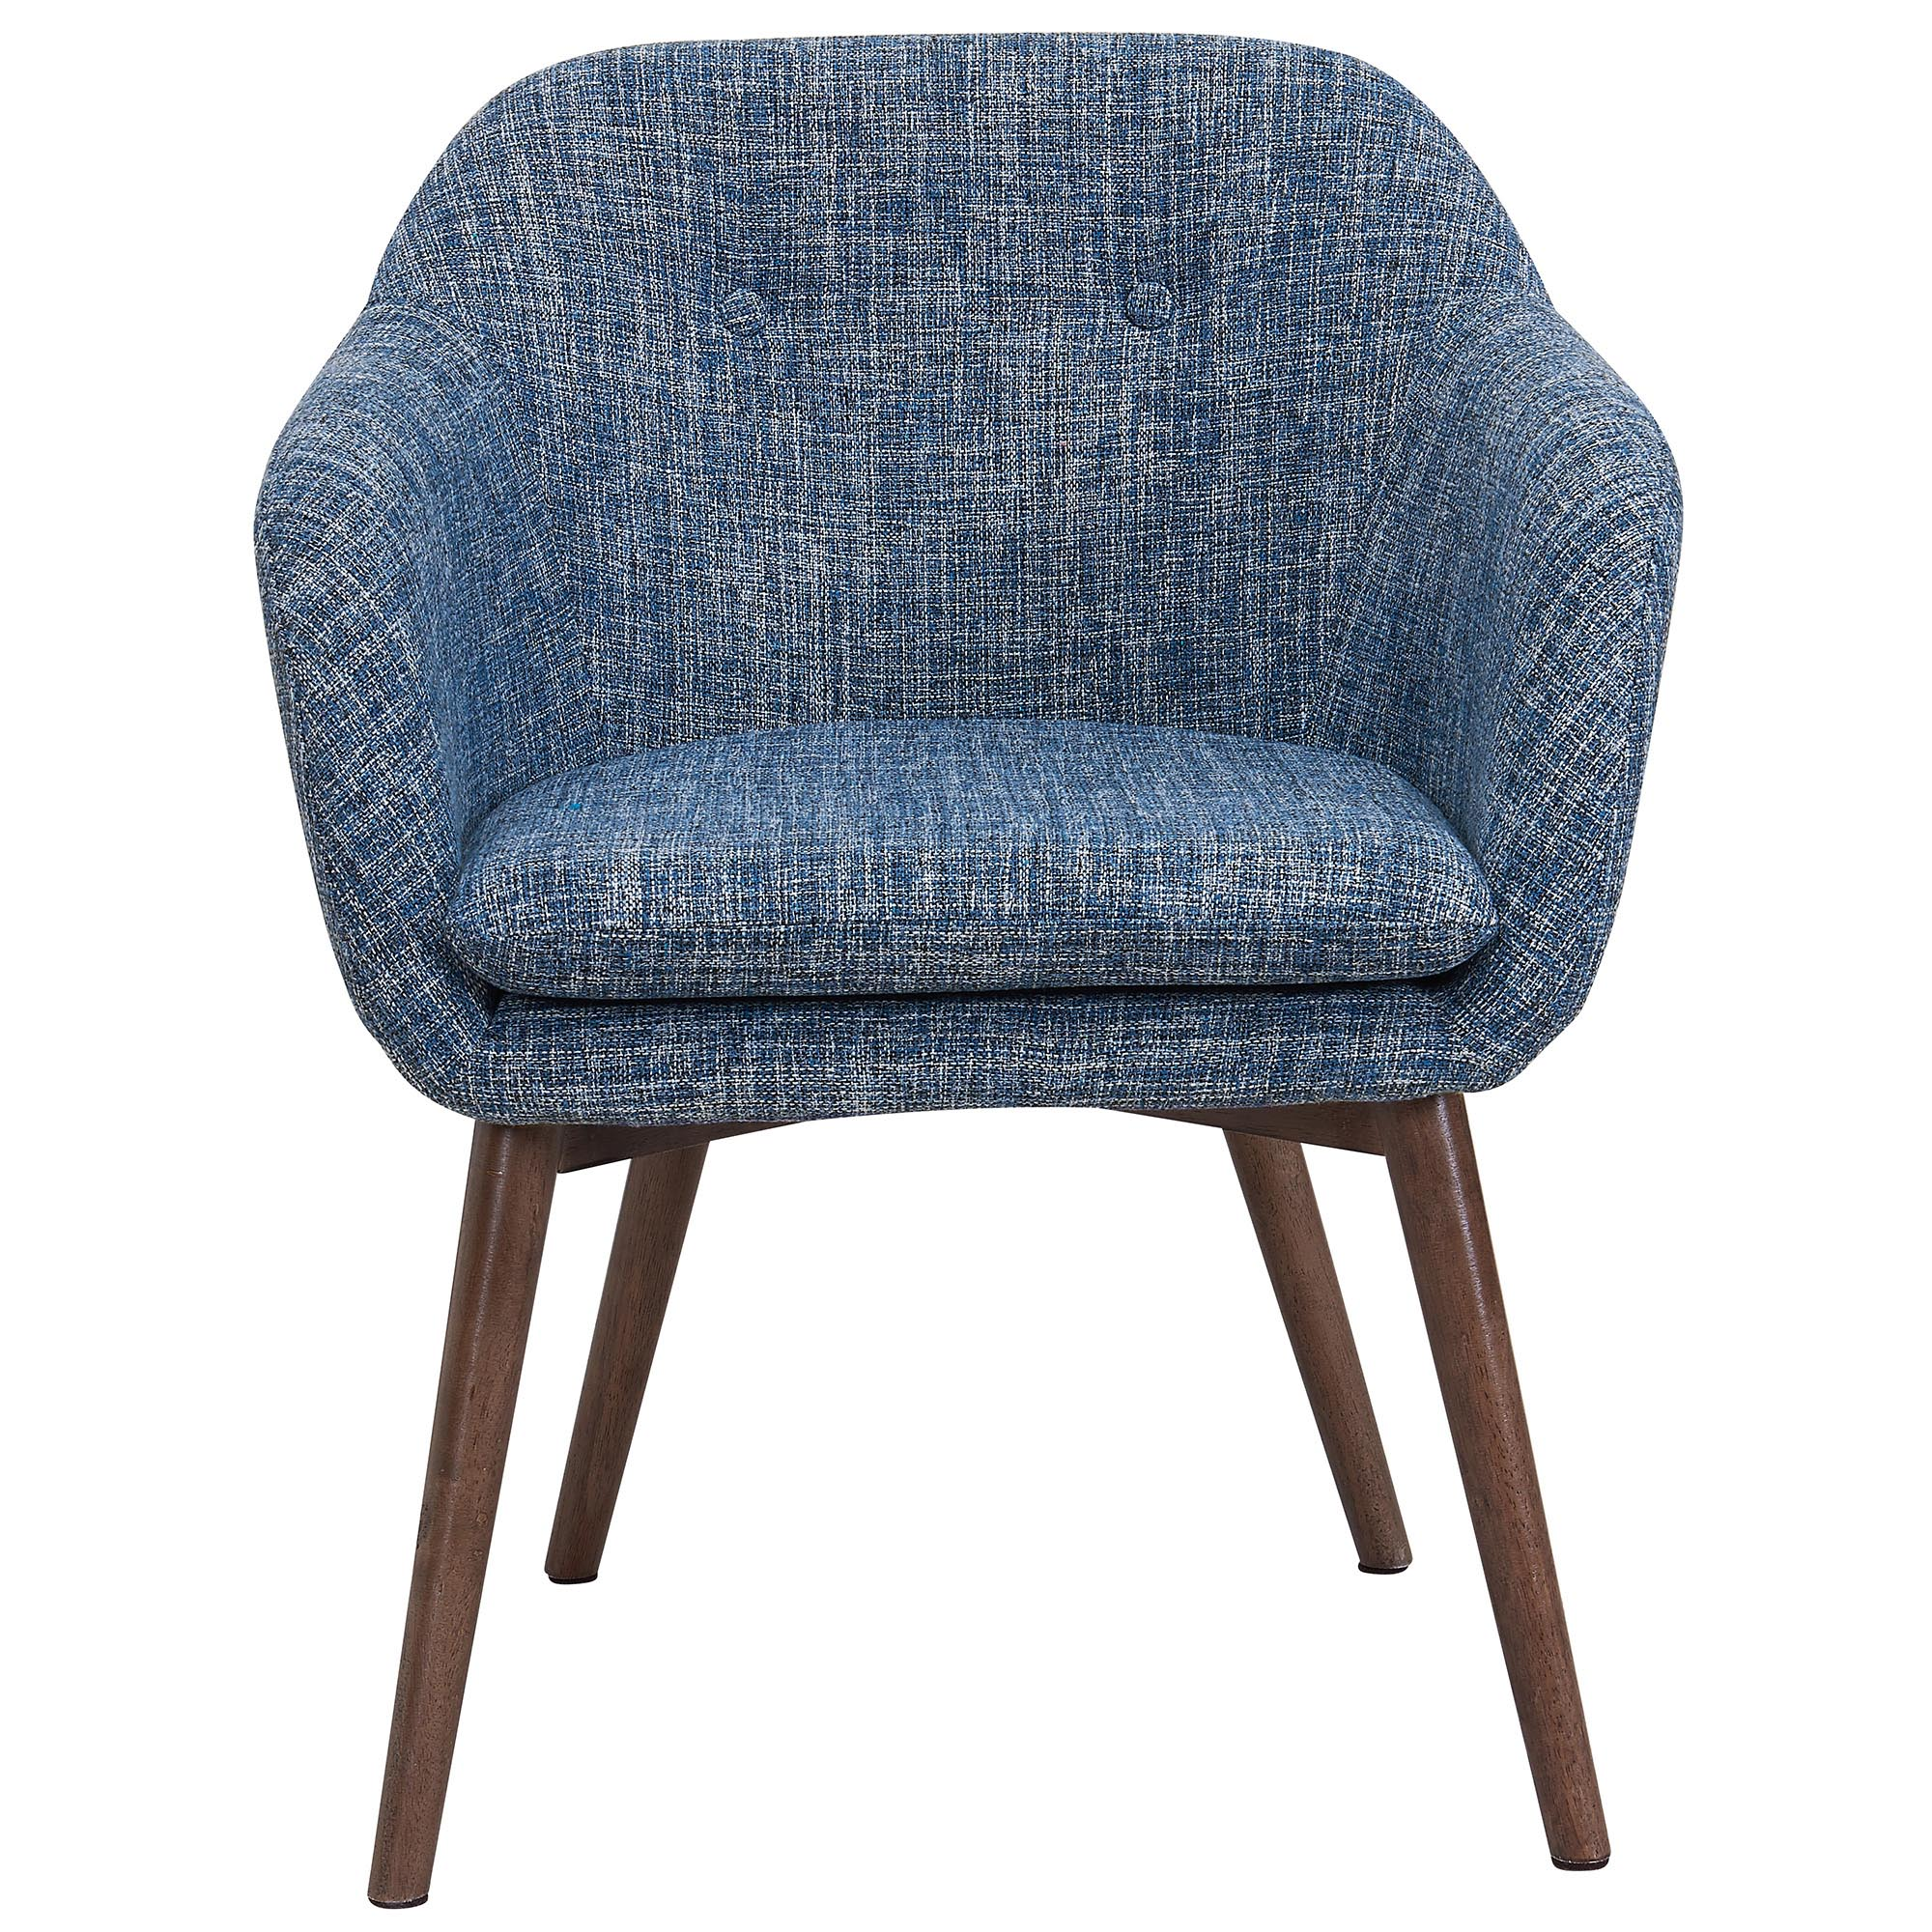 Mid-Century Fabric & Solid Wood Accent/Dining Chair in Blue Blend